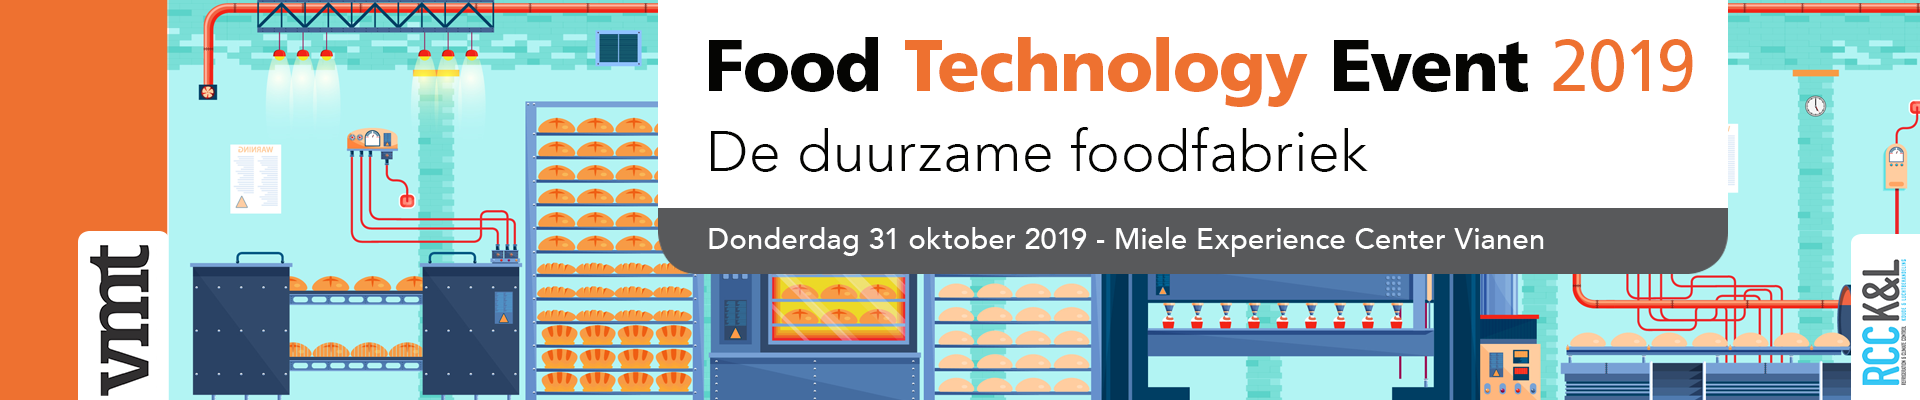 Food Technology Event 2019